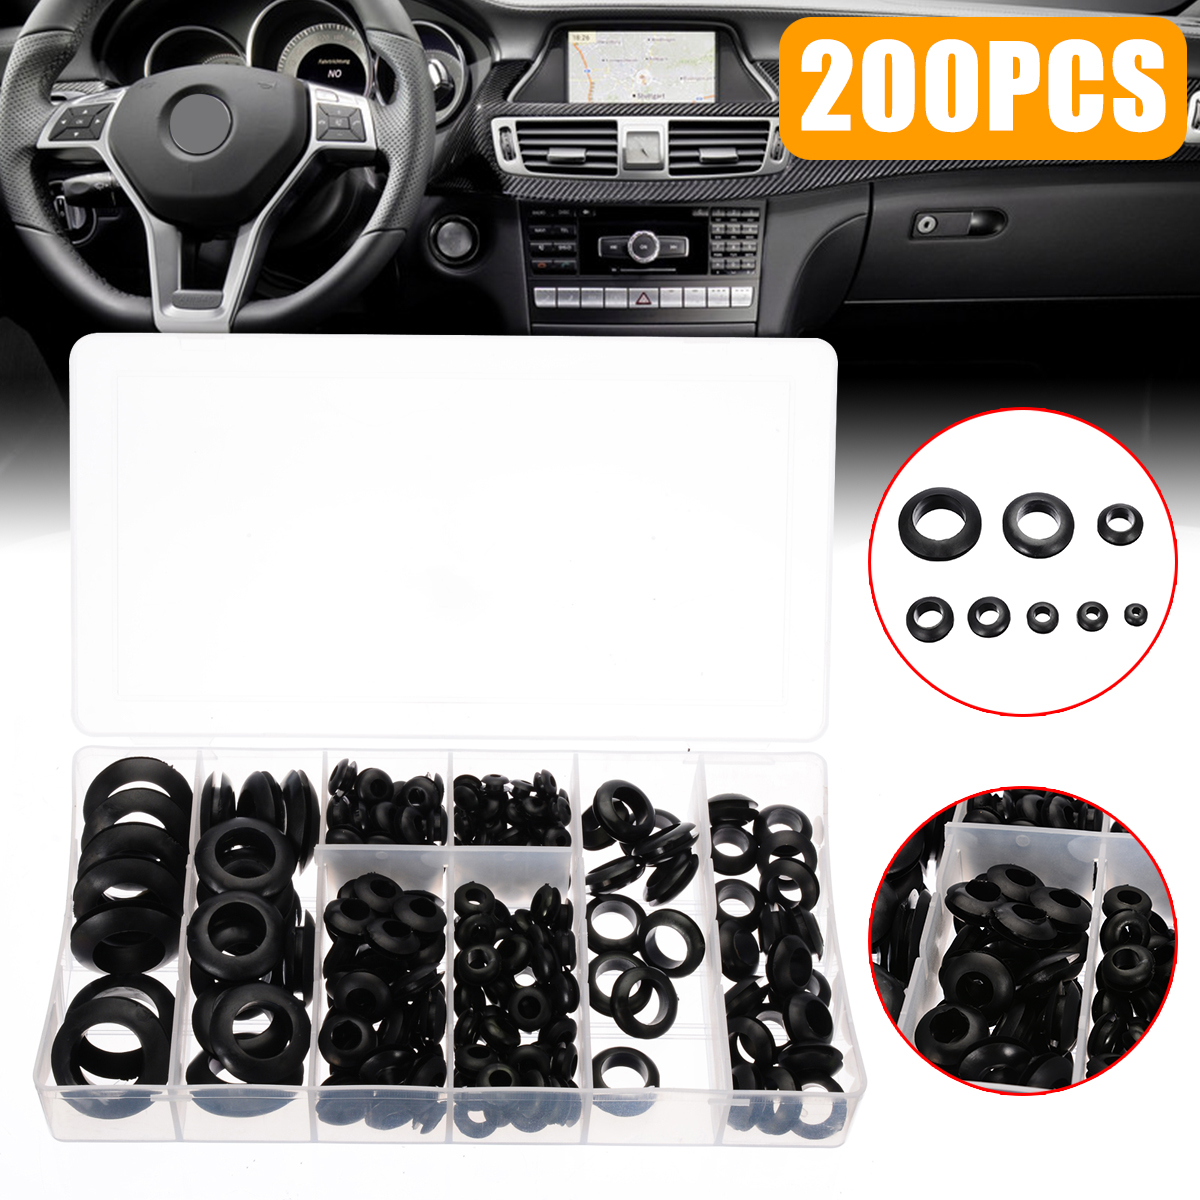 Mayitr 200pcs Rubber Grommet Assortment Set Black Electrical Wire Gasket Kit With A PVC Storage Case